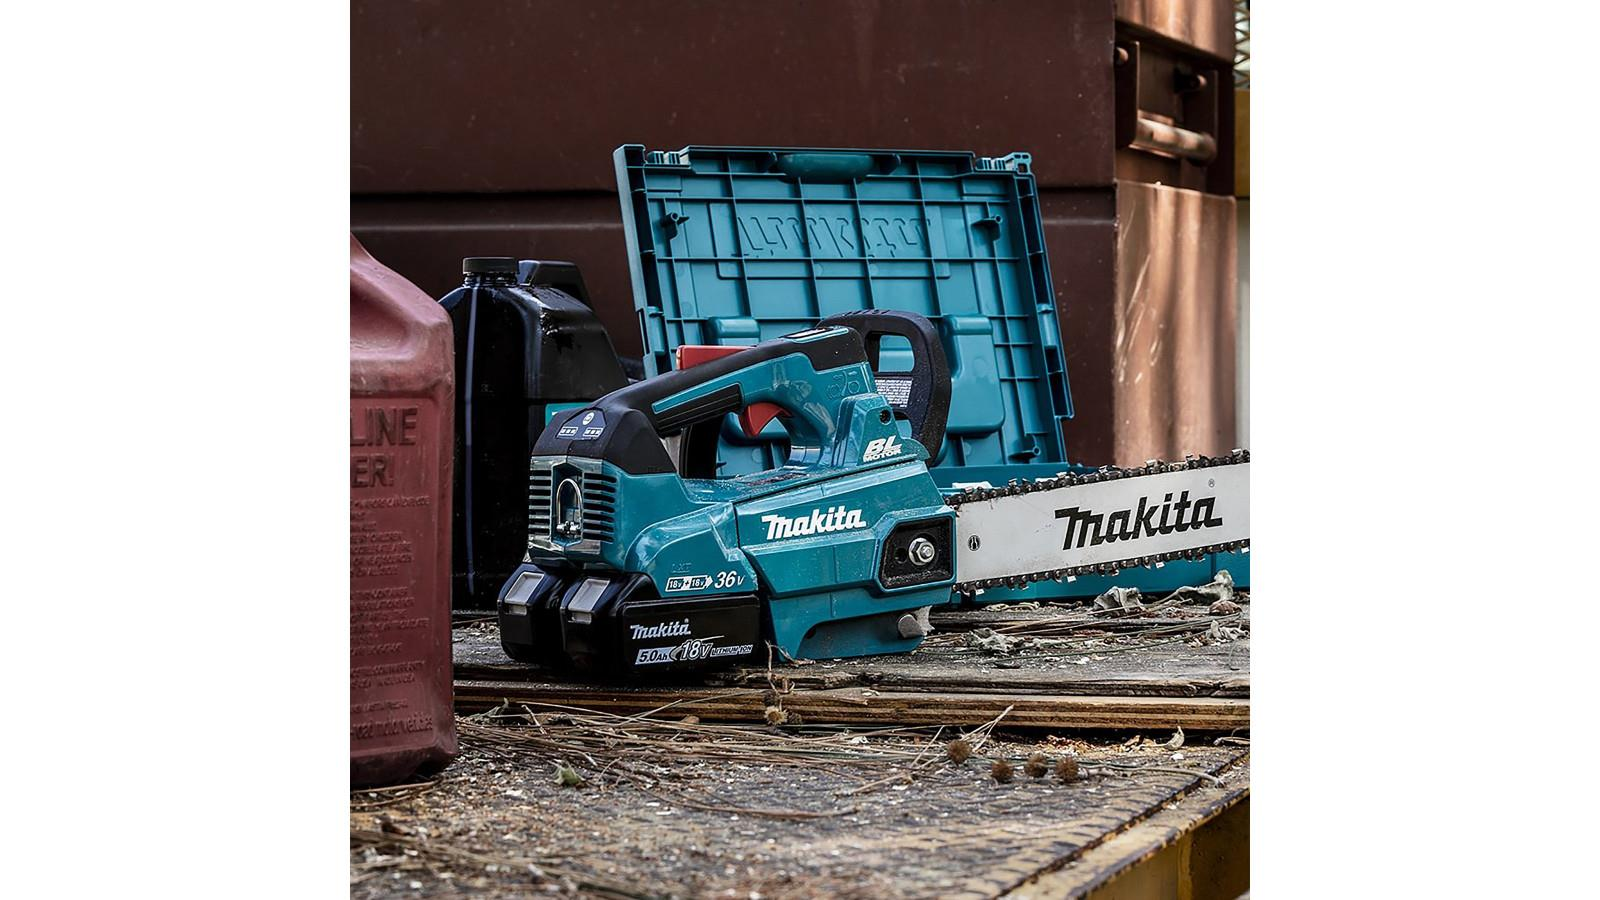 Makita's Outstanding Outdoor Offer image